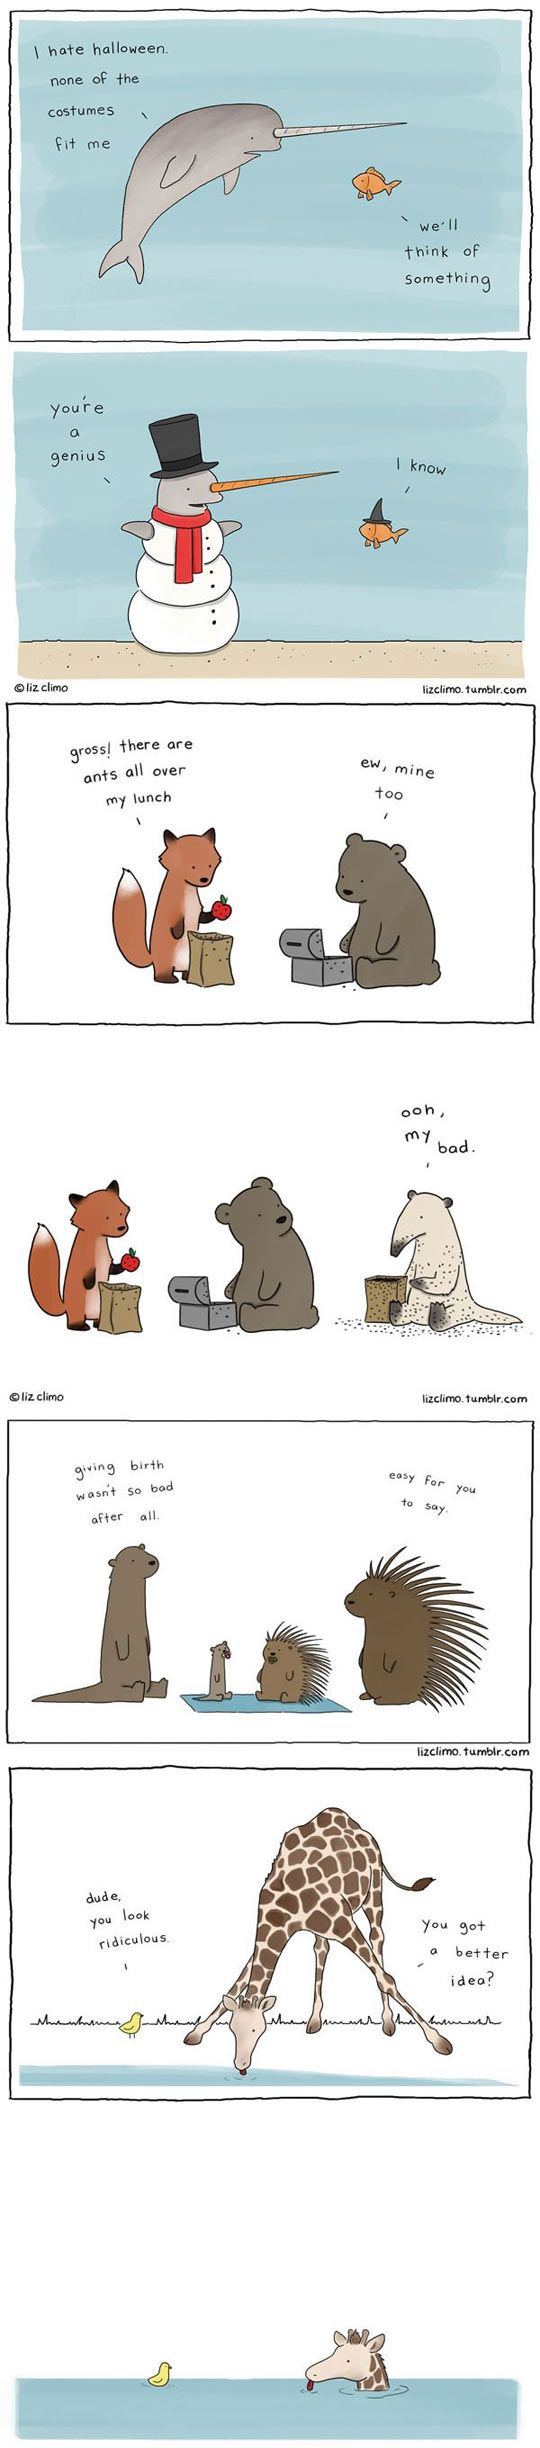 Animal Antics By Liz Climo